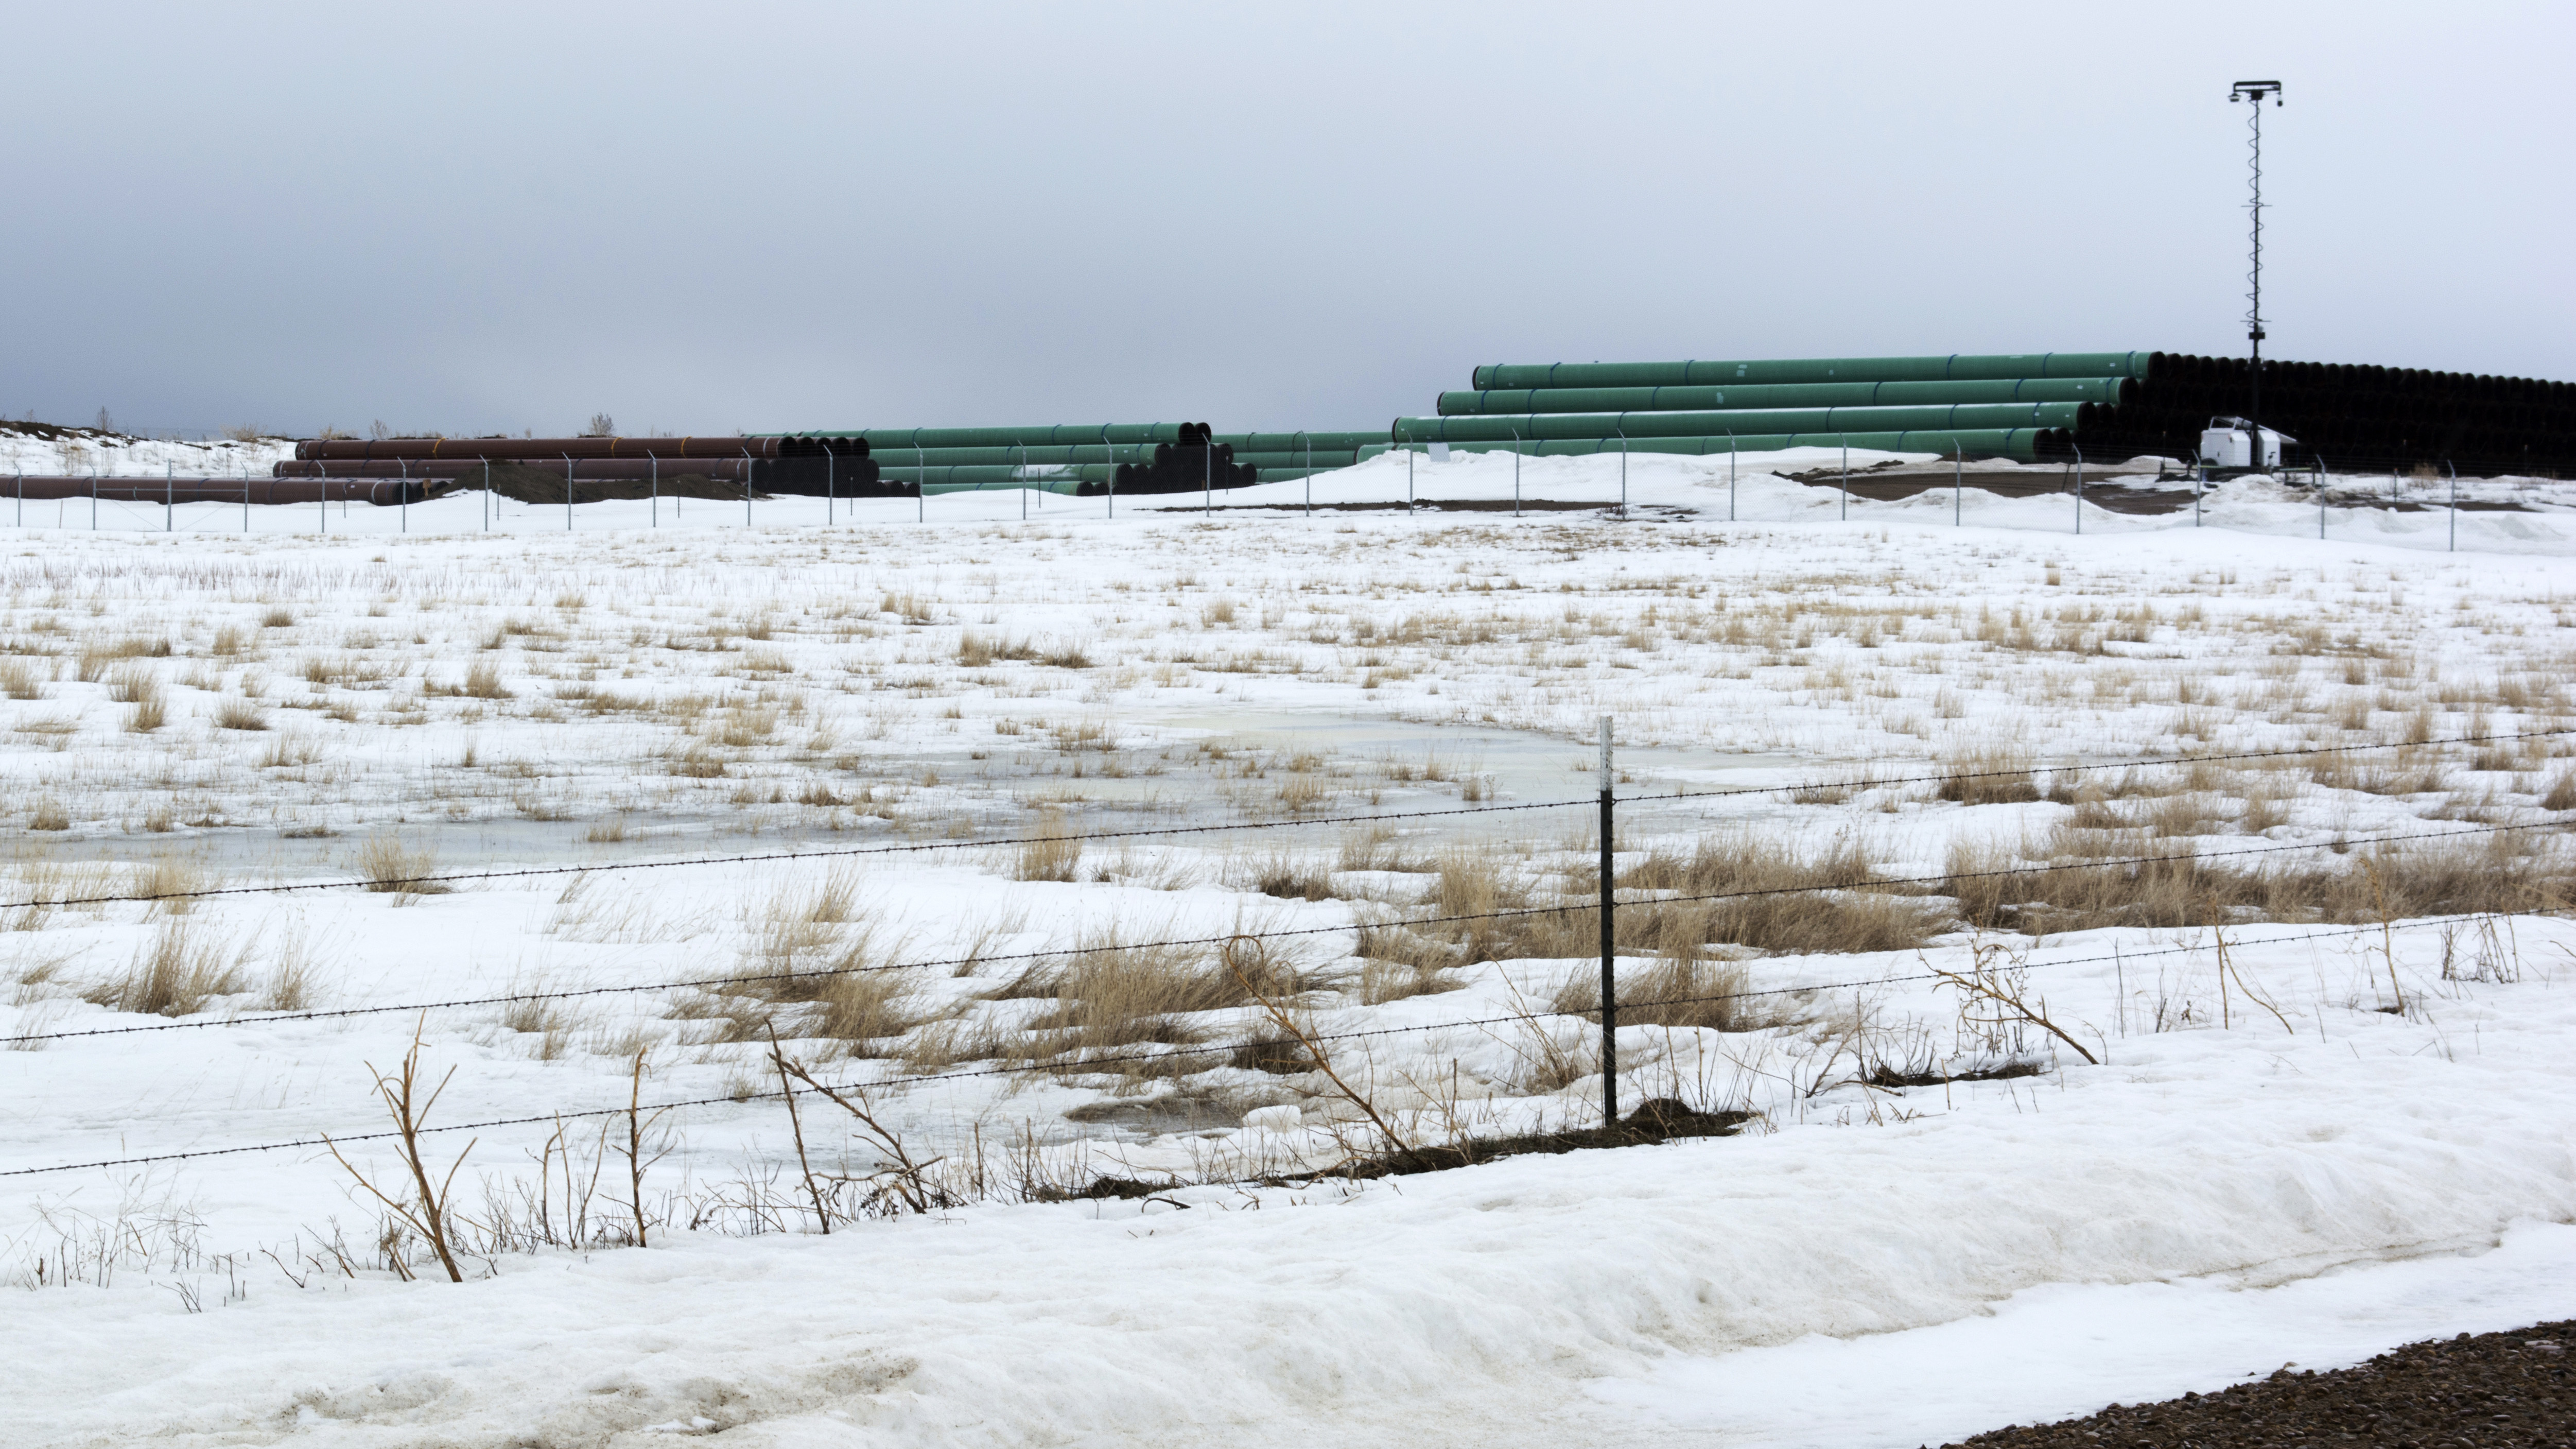 A storage yard in Montana contains pipe that was to be used in the construction of the Keystone XL oil pipeline. The developer has now canceled the controversial project.